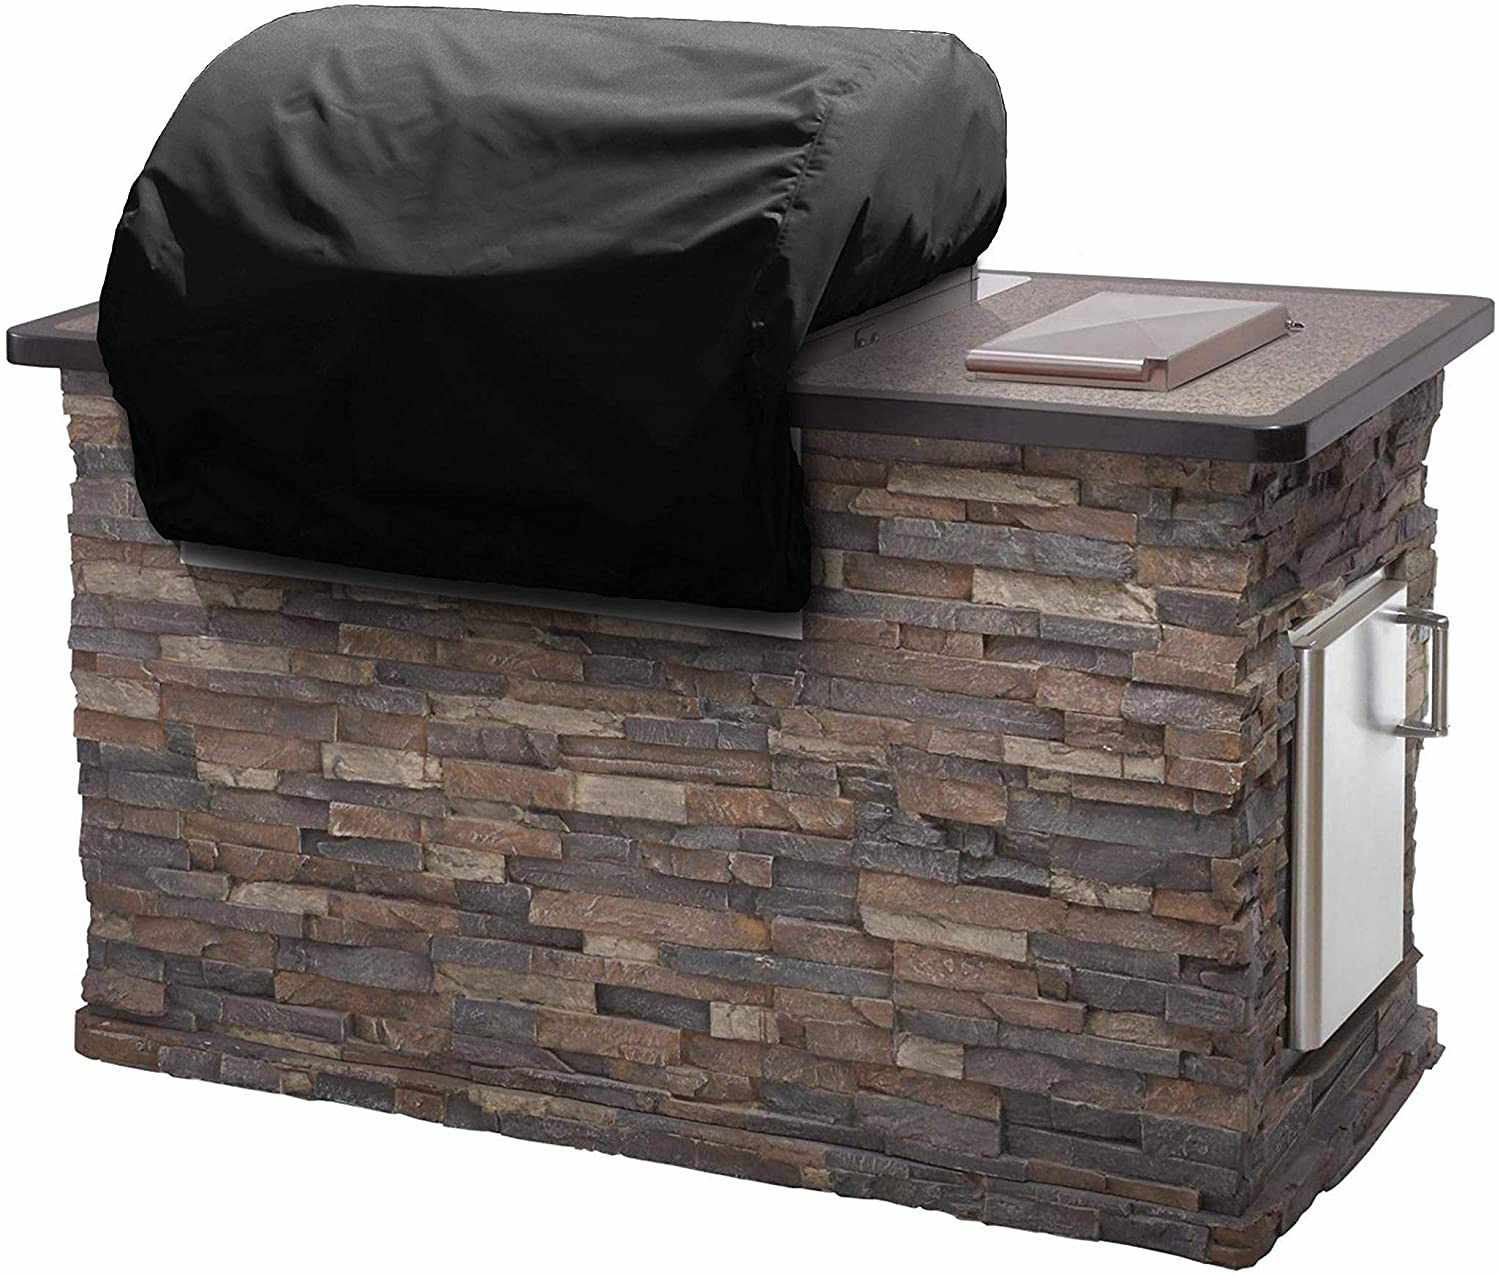 the-cover-store-built-in-grill-cover